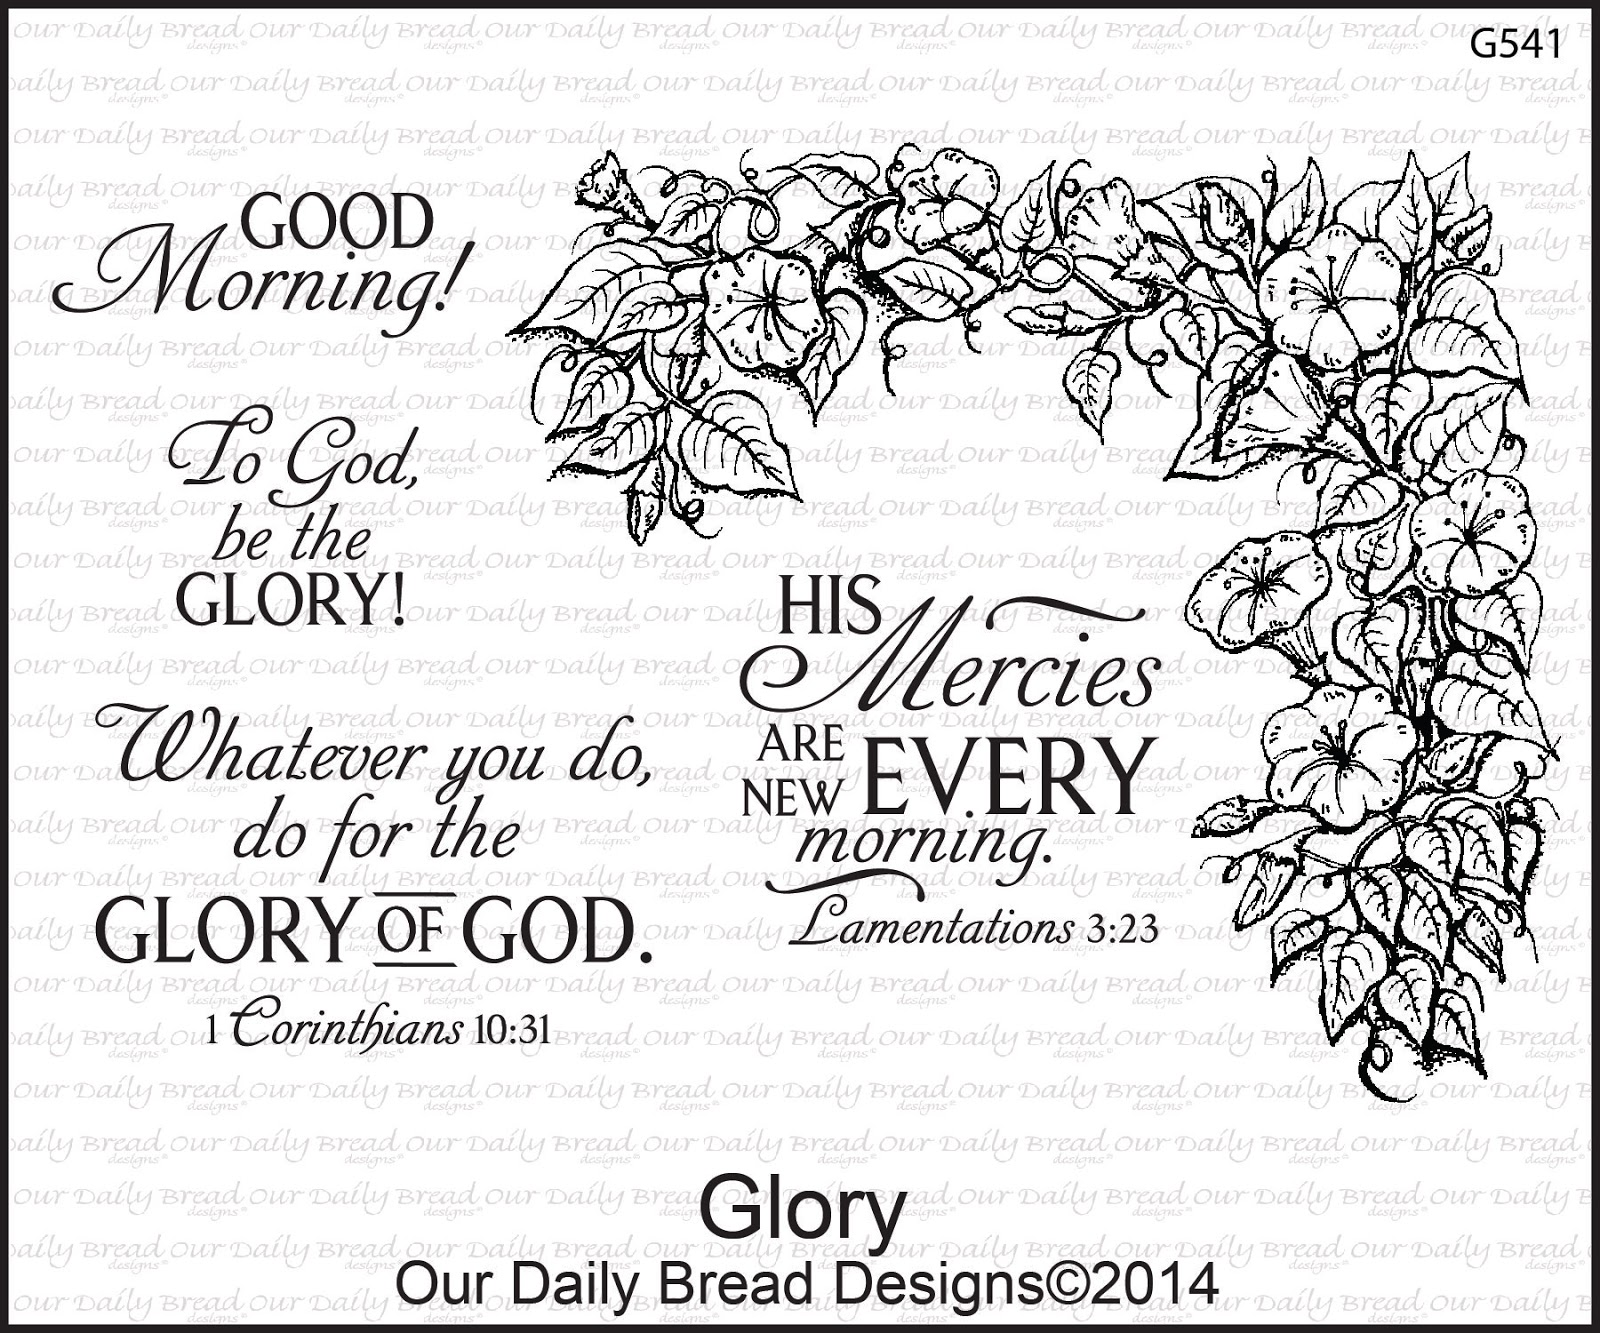 http://www.ourdailybreaddesigns.com/index.php/g541-glory.html